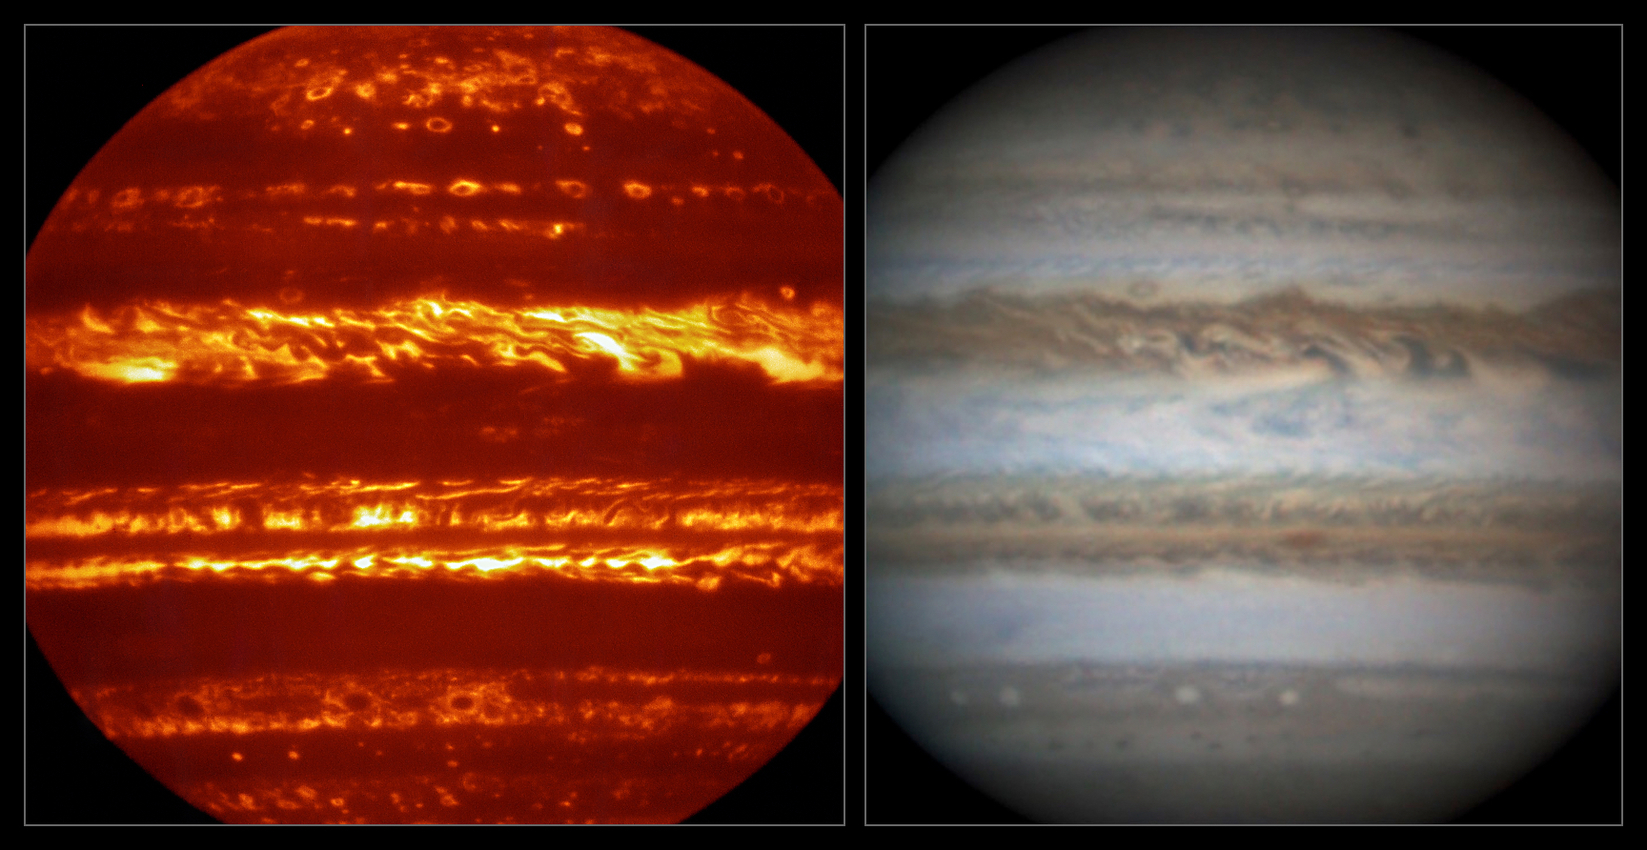 Ground-based observations of Jupiter to support Juno. The left hand image shows Jupiter's infrared glow with dark clouds in silhouette against the bright background (Credit: ESO/L.N. Fletcher), the right hand image is an amateur observation acquired at nearly the same time (Credit: D. Peach). - Image Credit:ESO/L.N. Fletcher/D. Peach